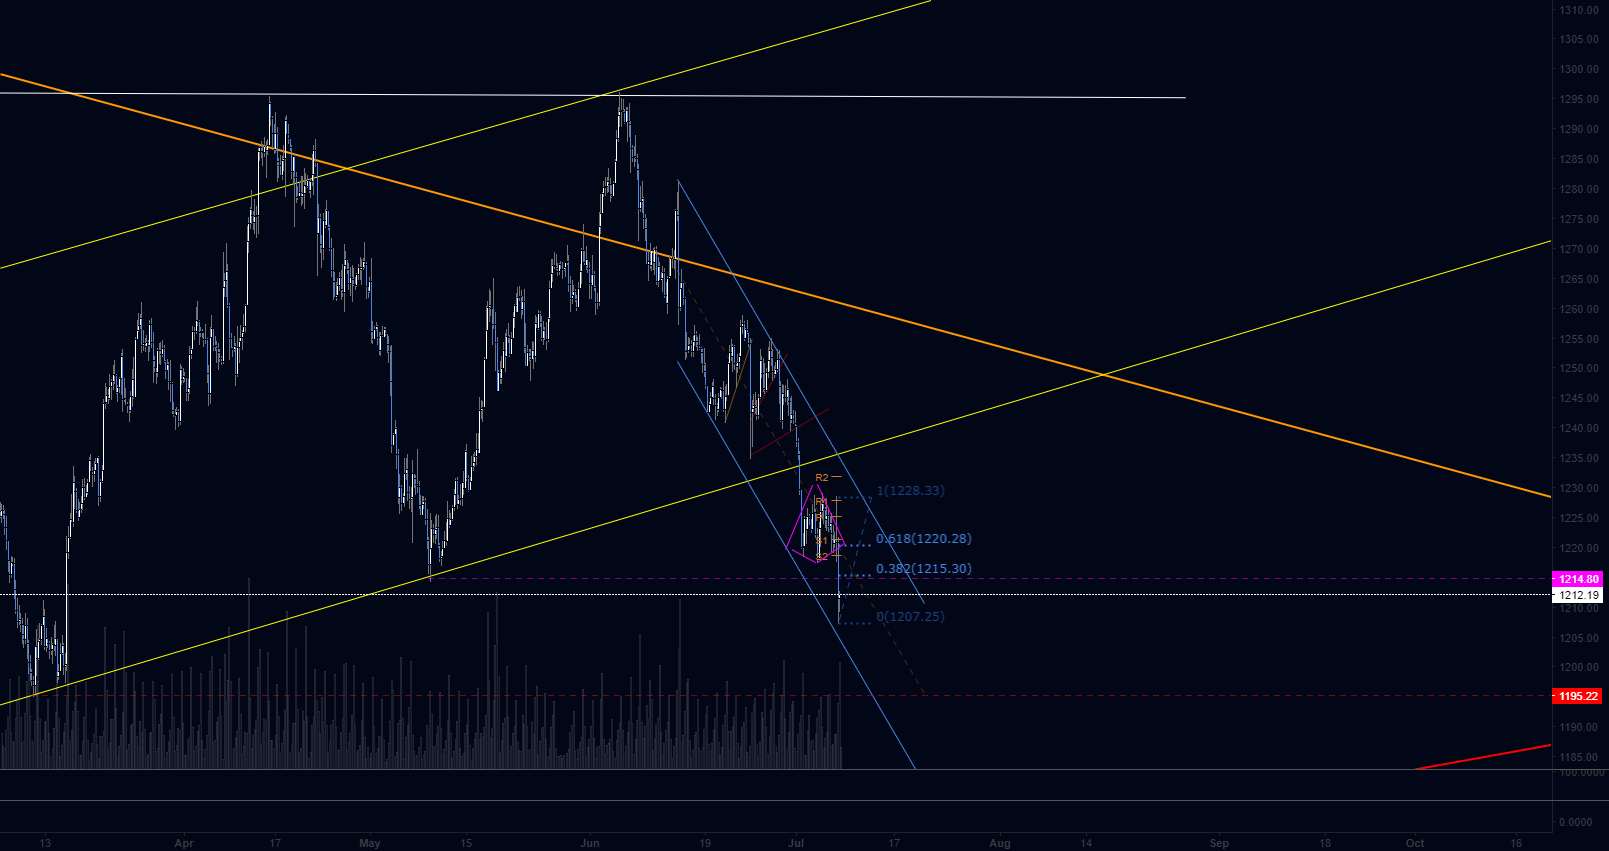 XAUUSD - Daily and Hourly Gold Resistance to watch